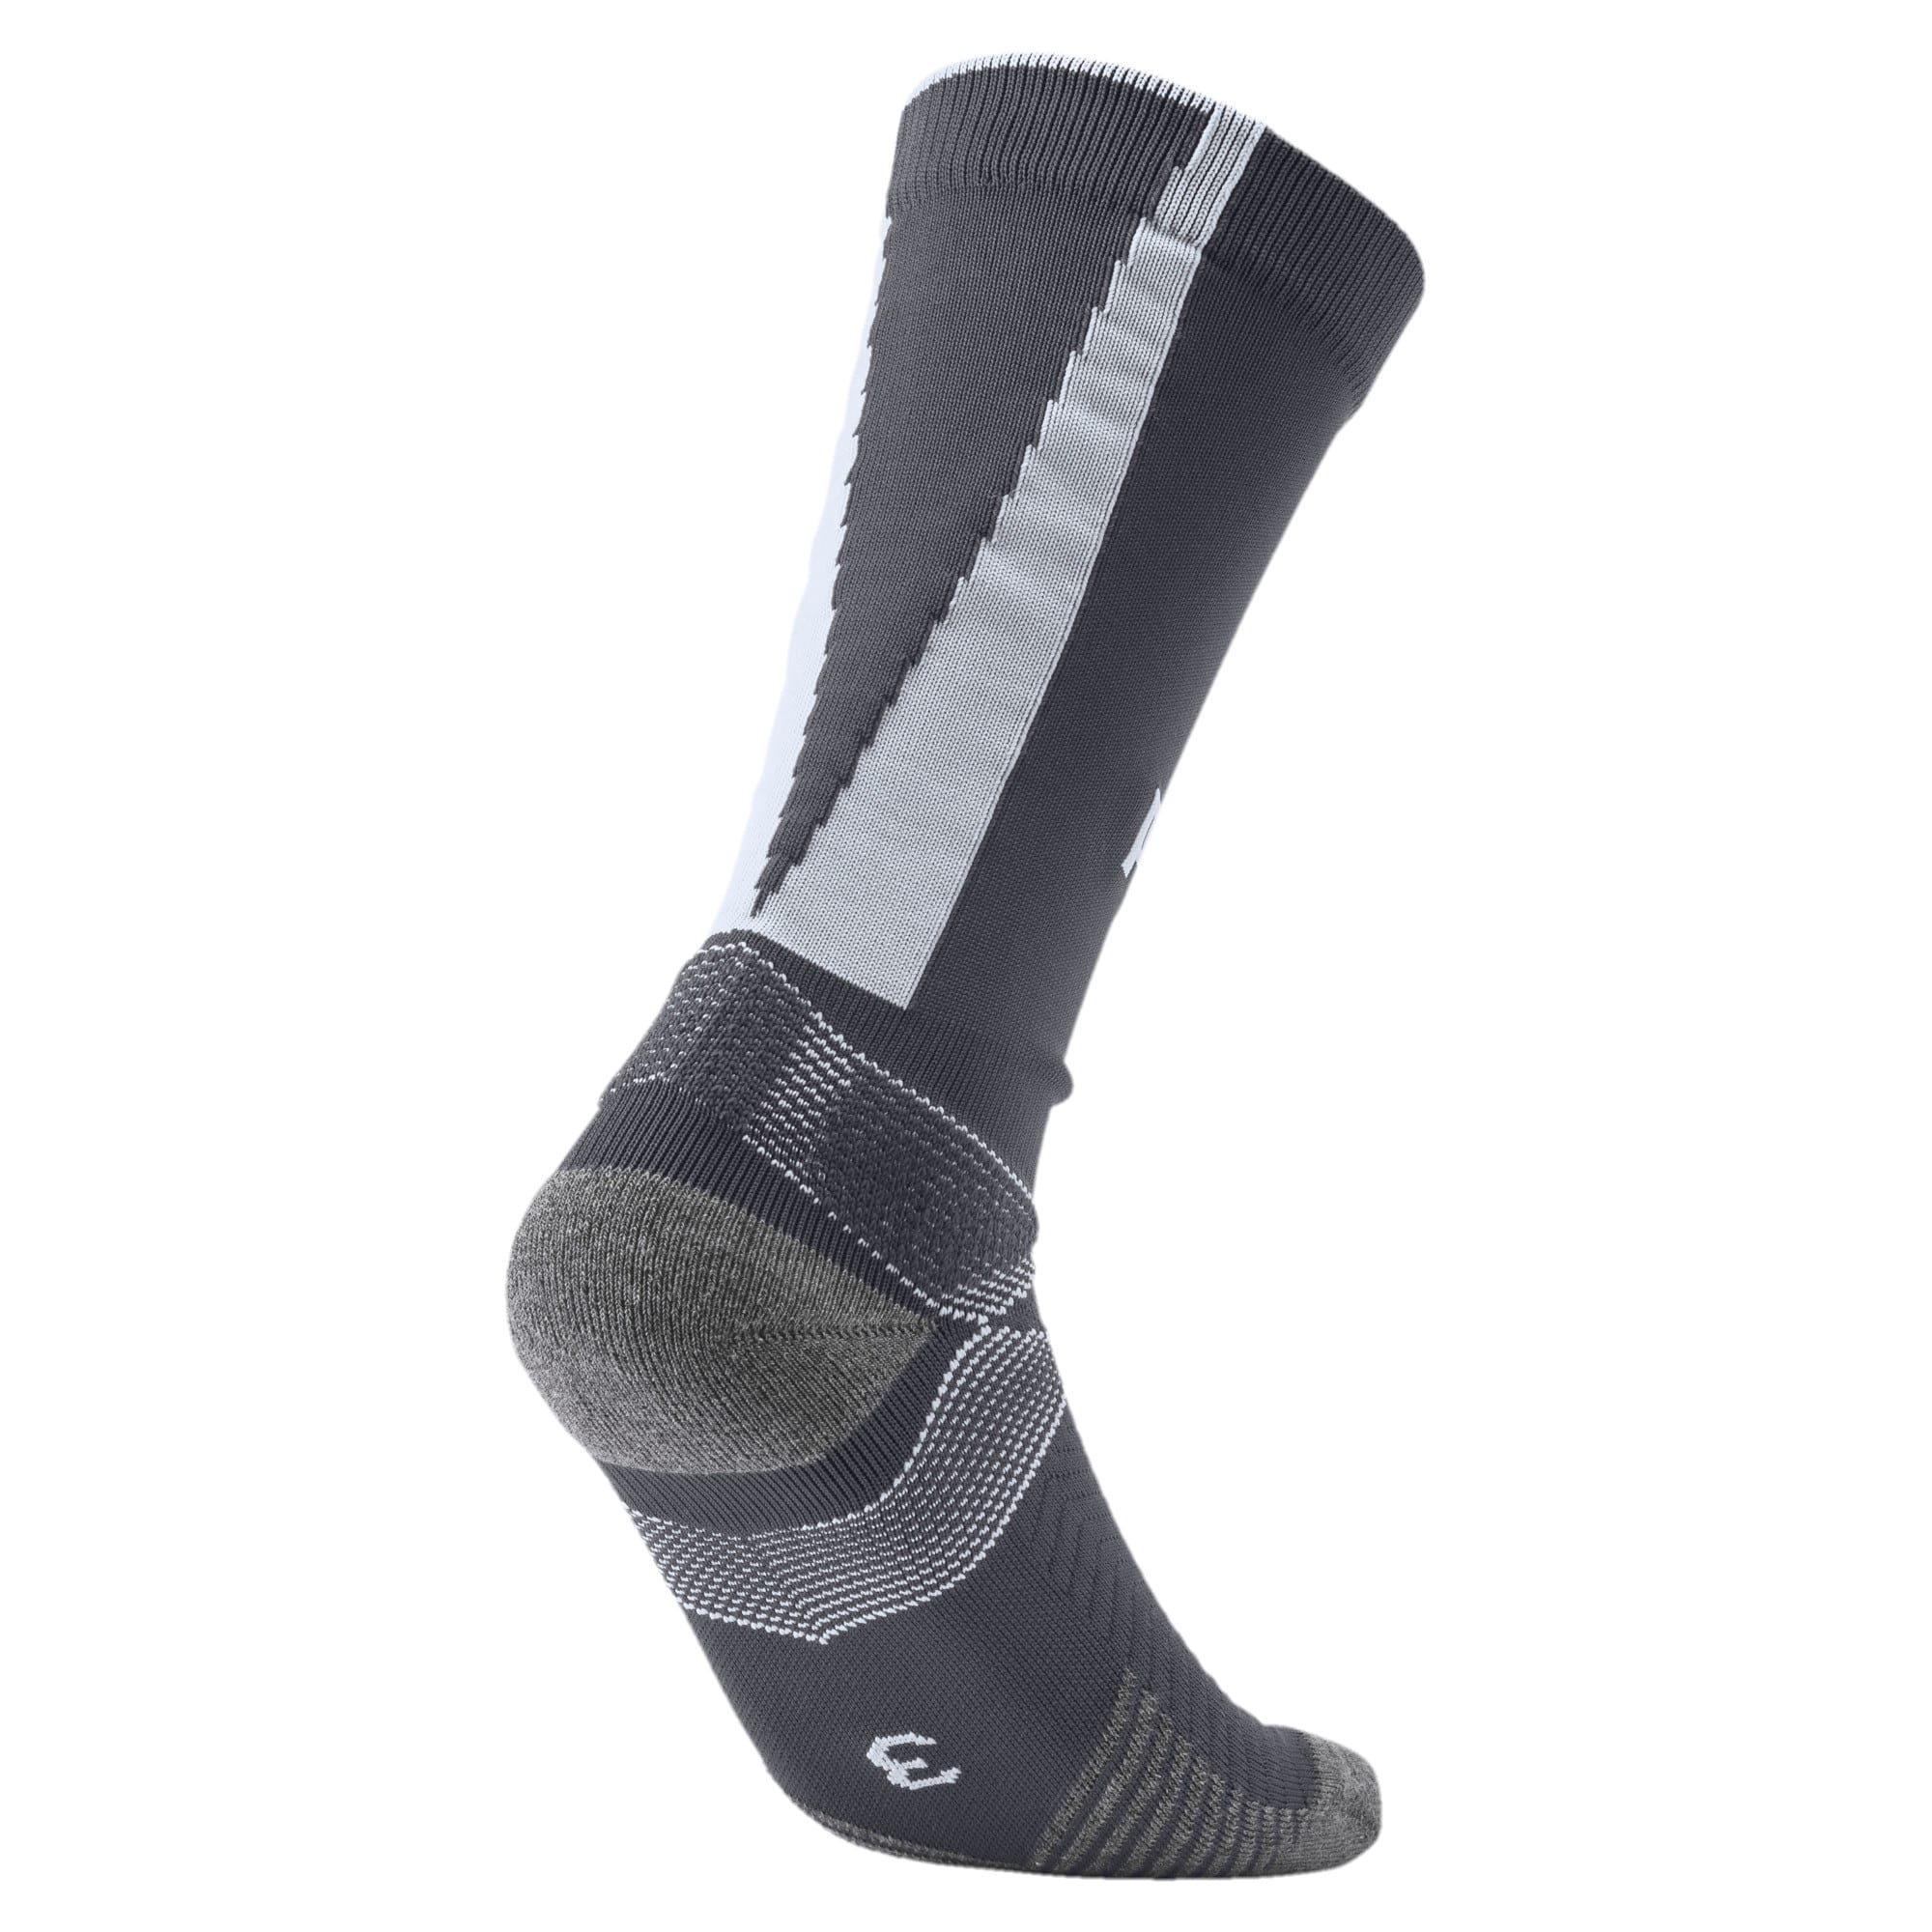 Thumbnail 2 of Team ftblNXT Casuals Men's Socks, Ebony-Grey Dawn, medium